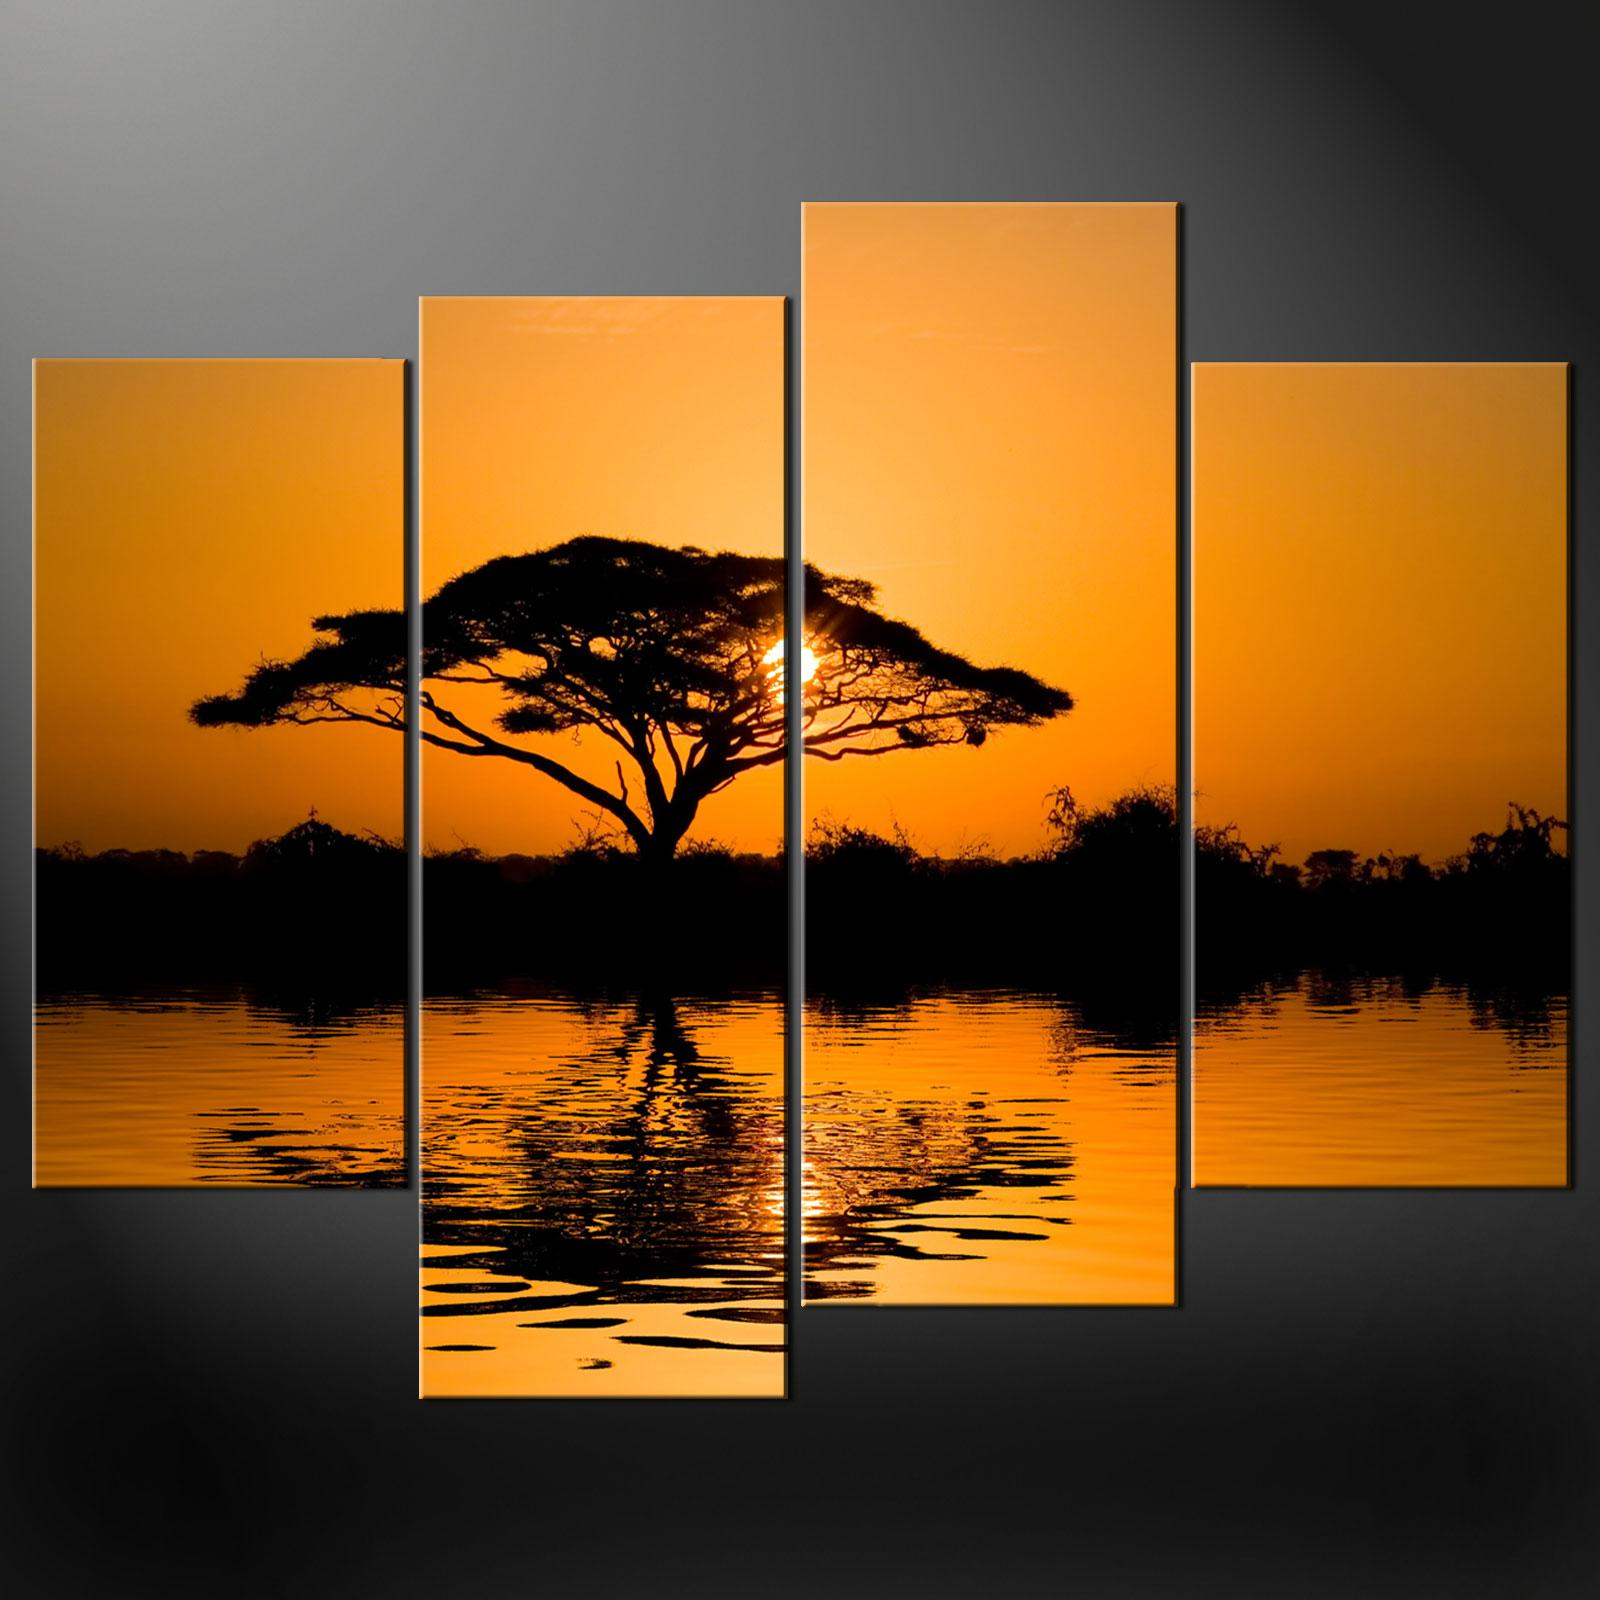 Charming Framed 4 Panel Large African Wall Art Decor Modern Sunset Oil Painting  Beach Picture Home Decor XD01886 African Wall Art Decor Canvas Art Picture  Online ...